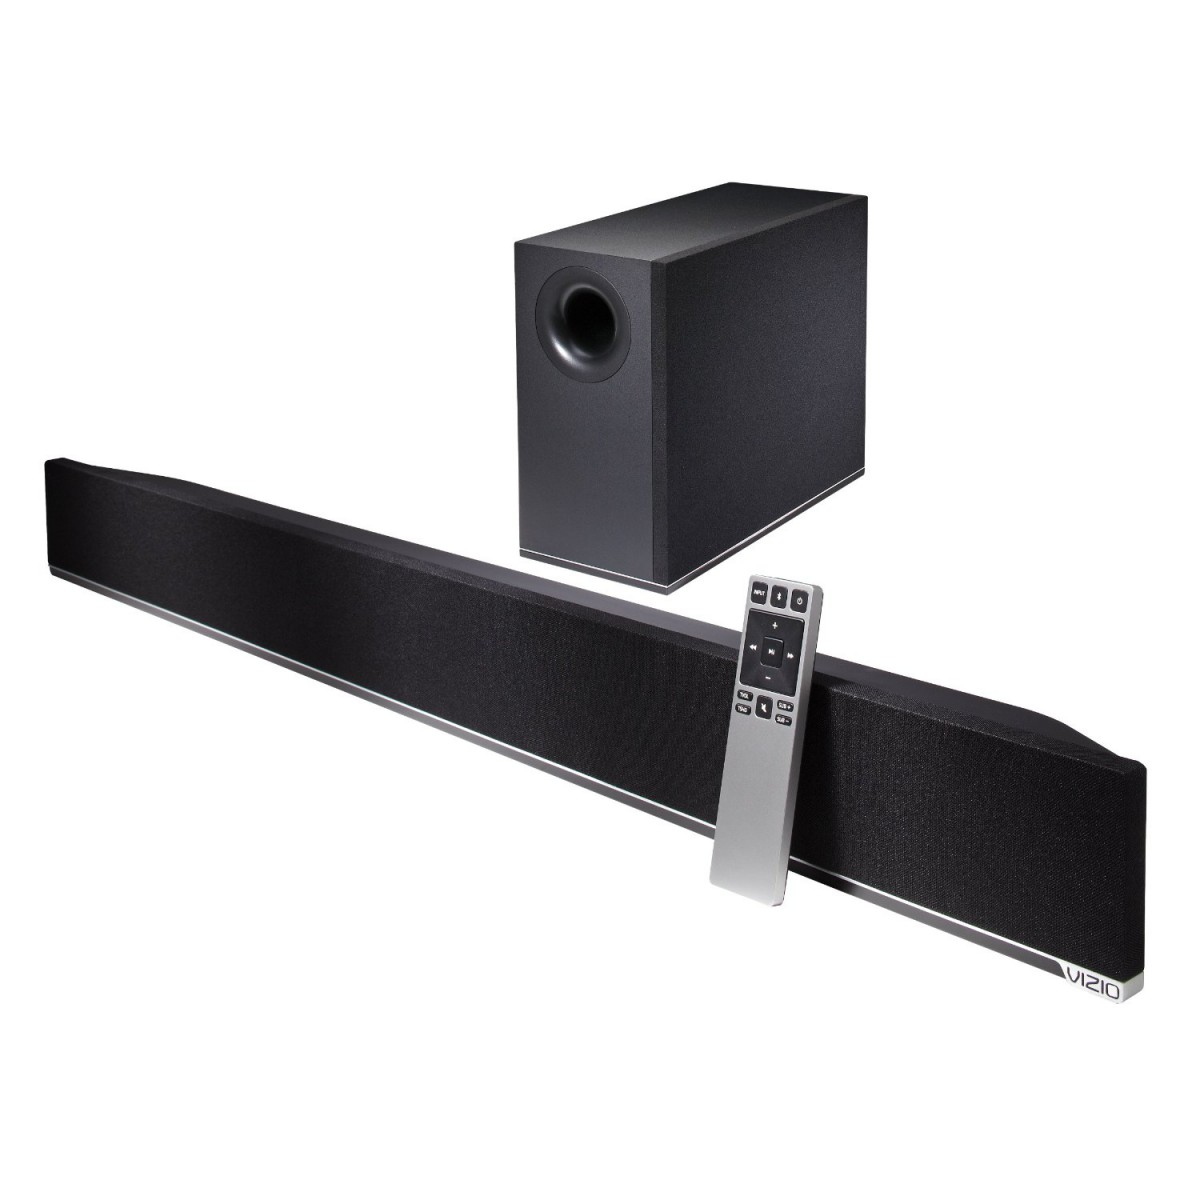 Vizio sound bar w/ subwoofer